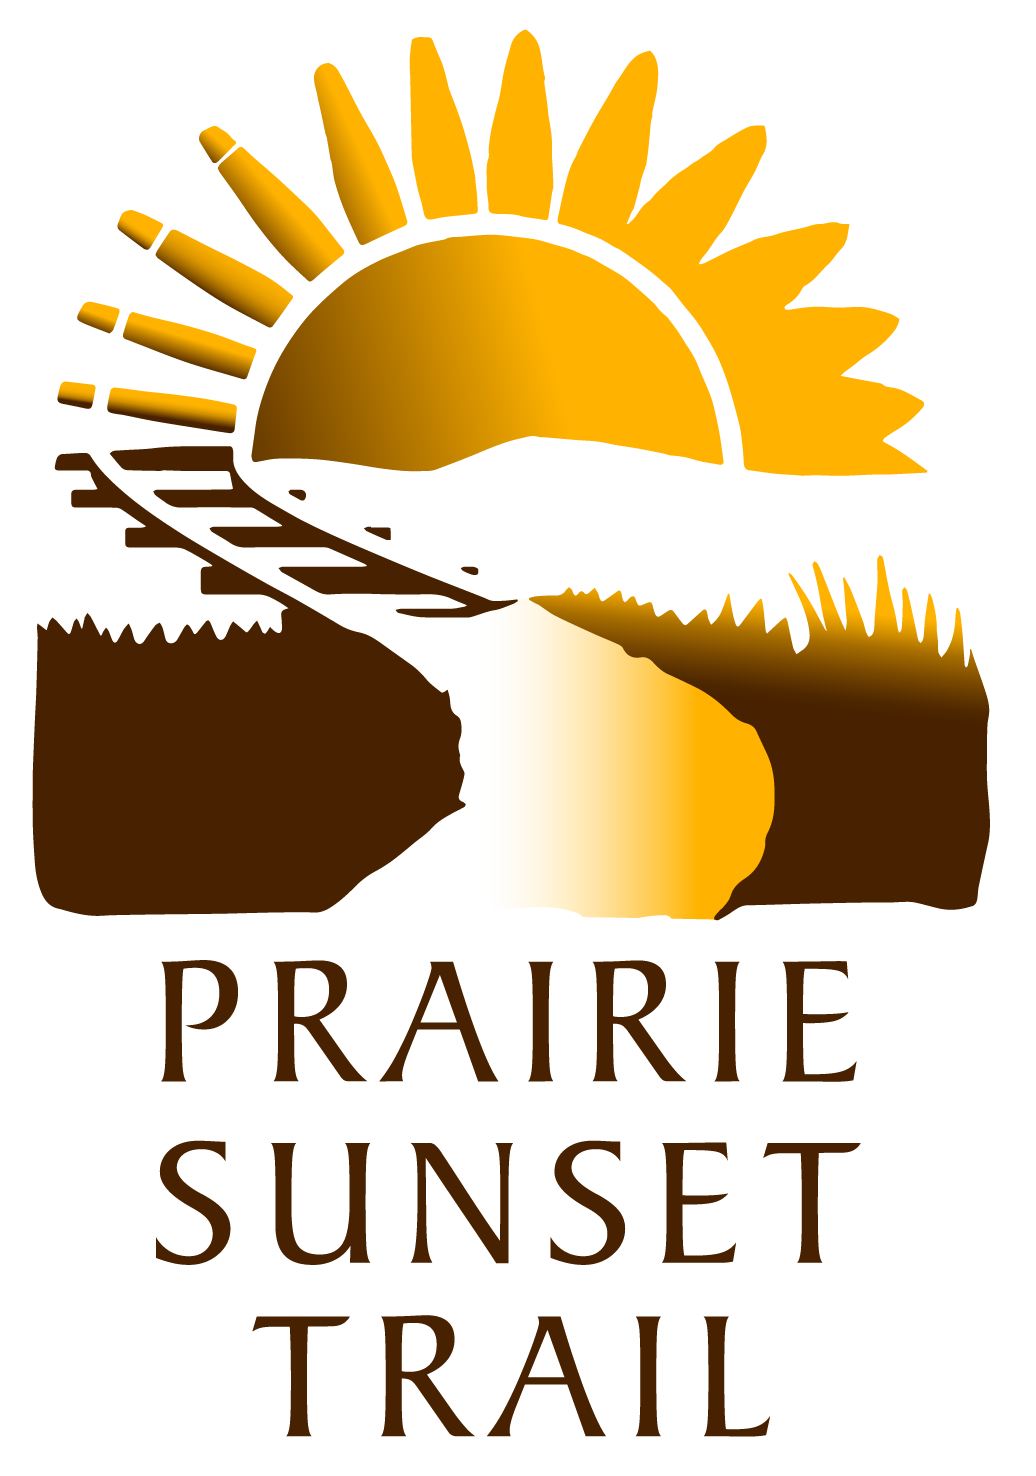 About the trail prairie. Sunset clipart road sunset